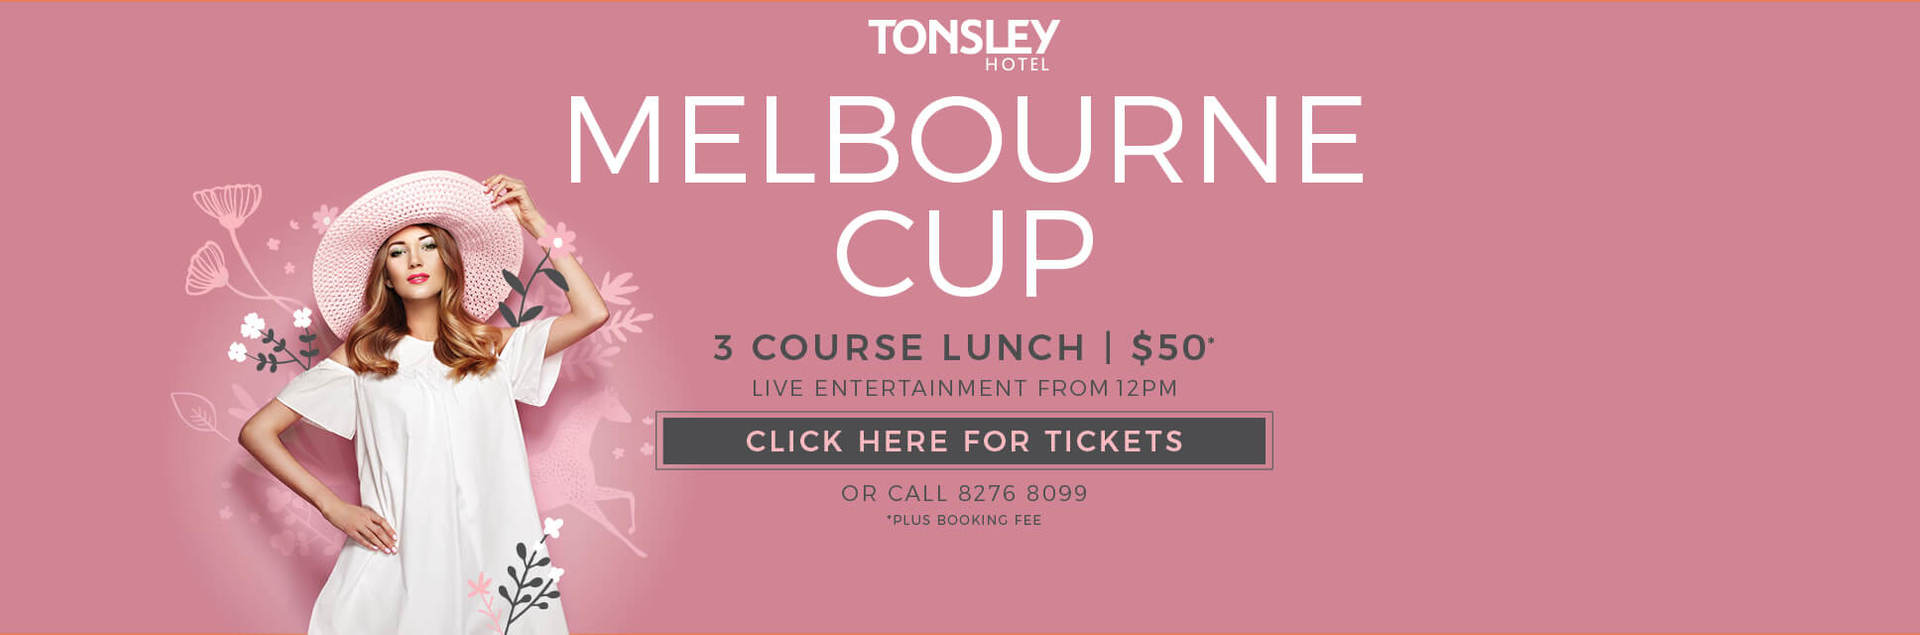 The-Tonsley-Hotel-Restaurant-Adelaide-Accommodation-Function-Rooms-Music-Melbourne-Cup-slider.jpg